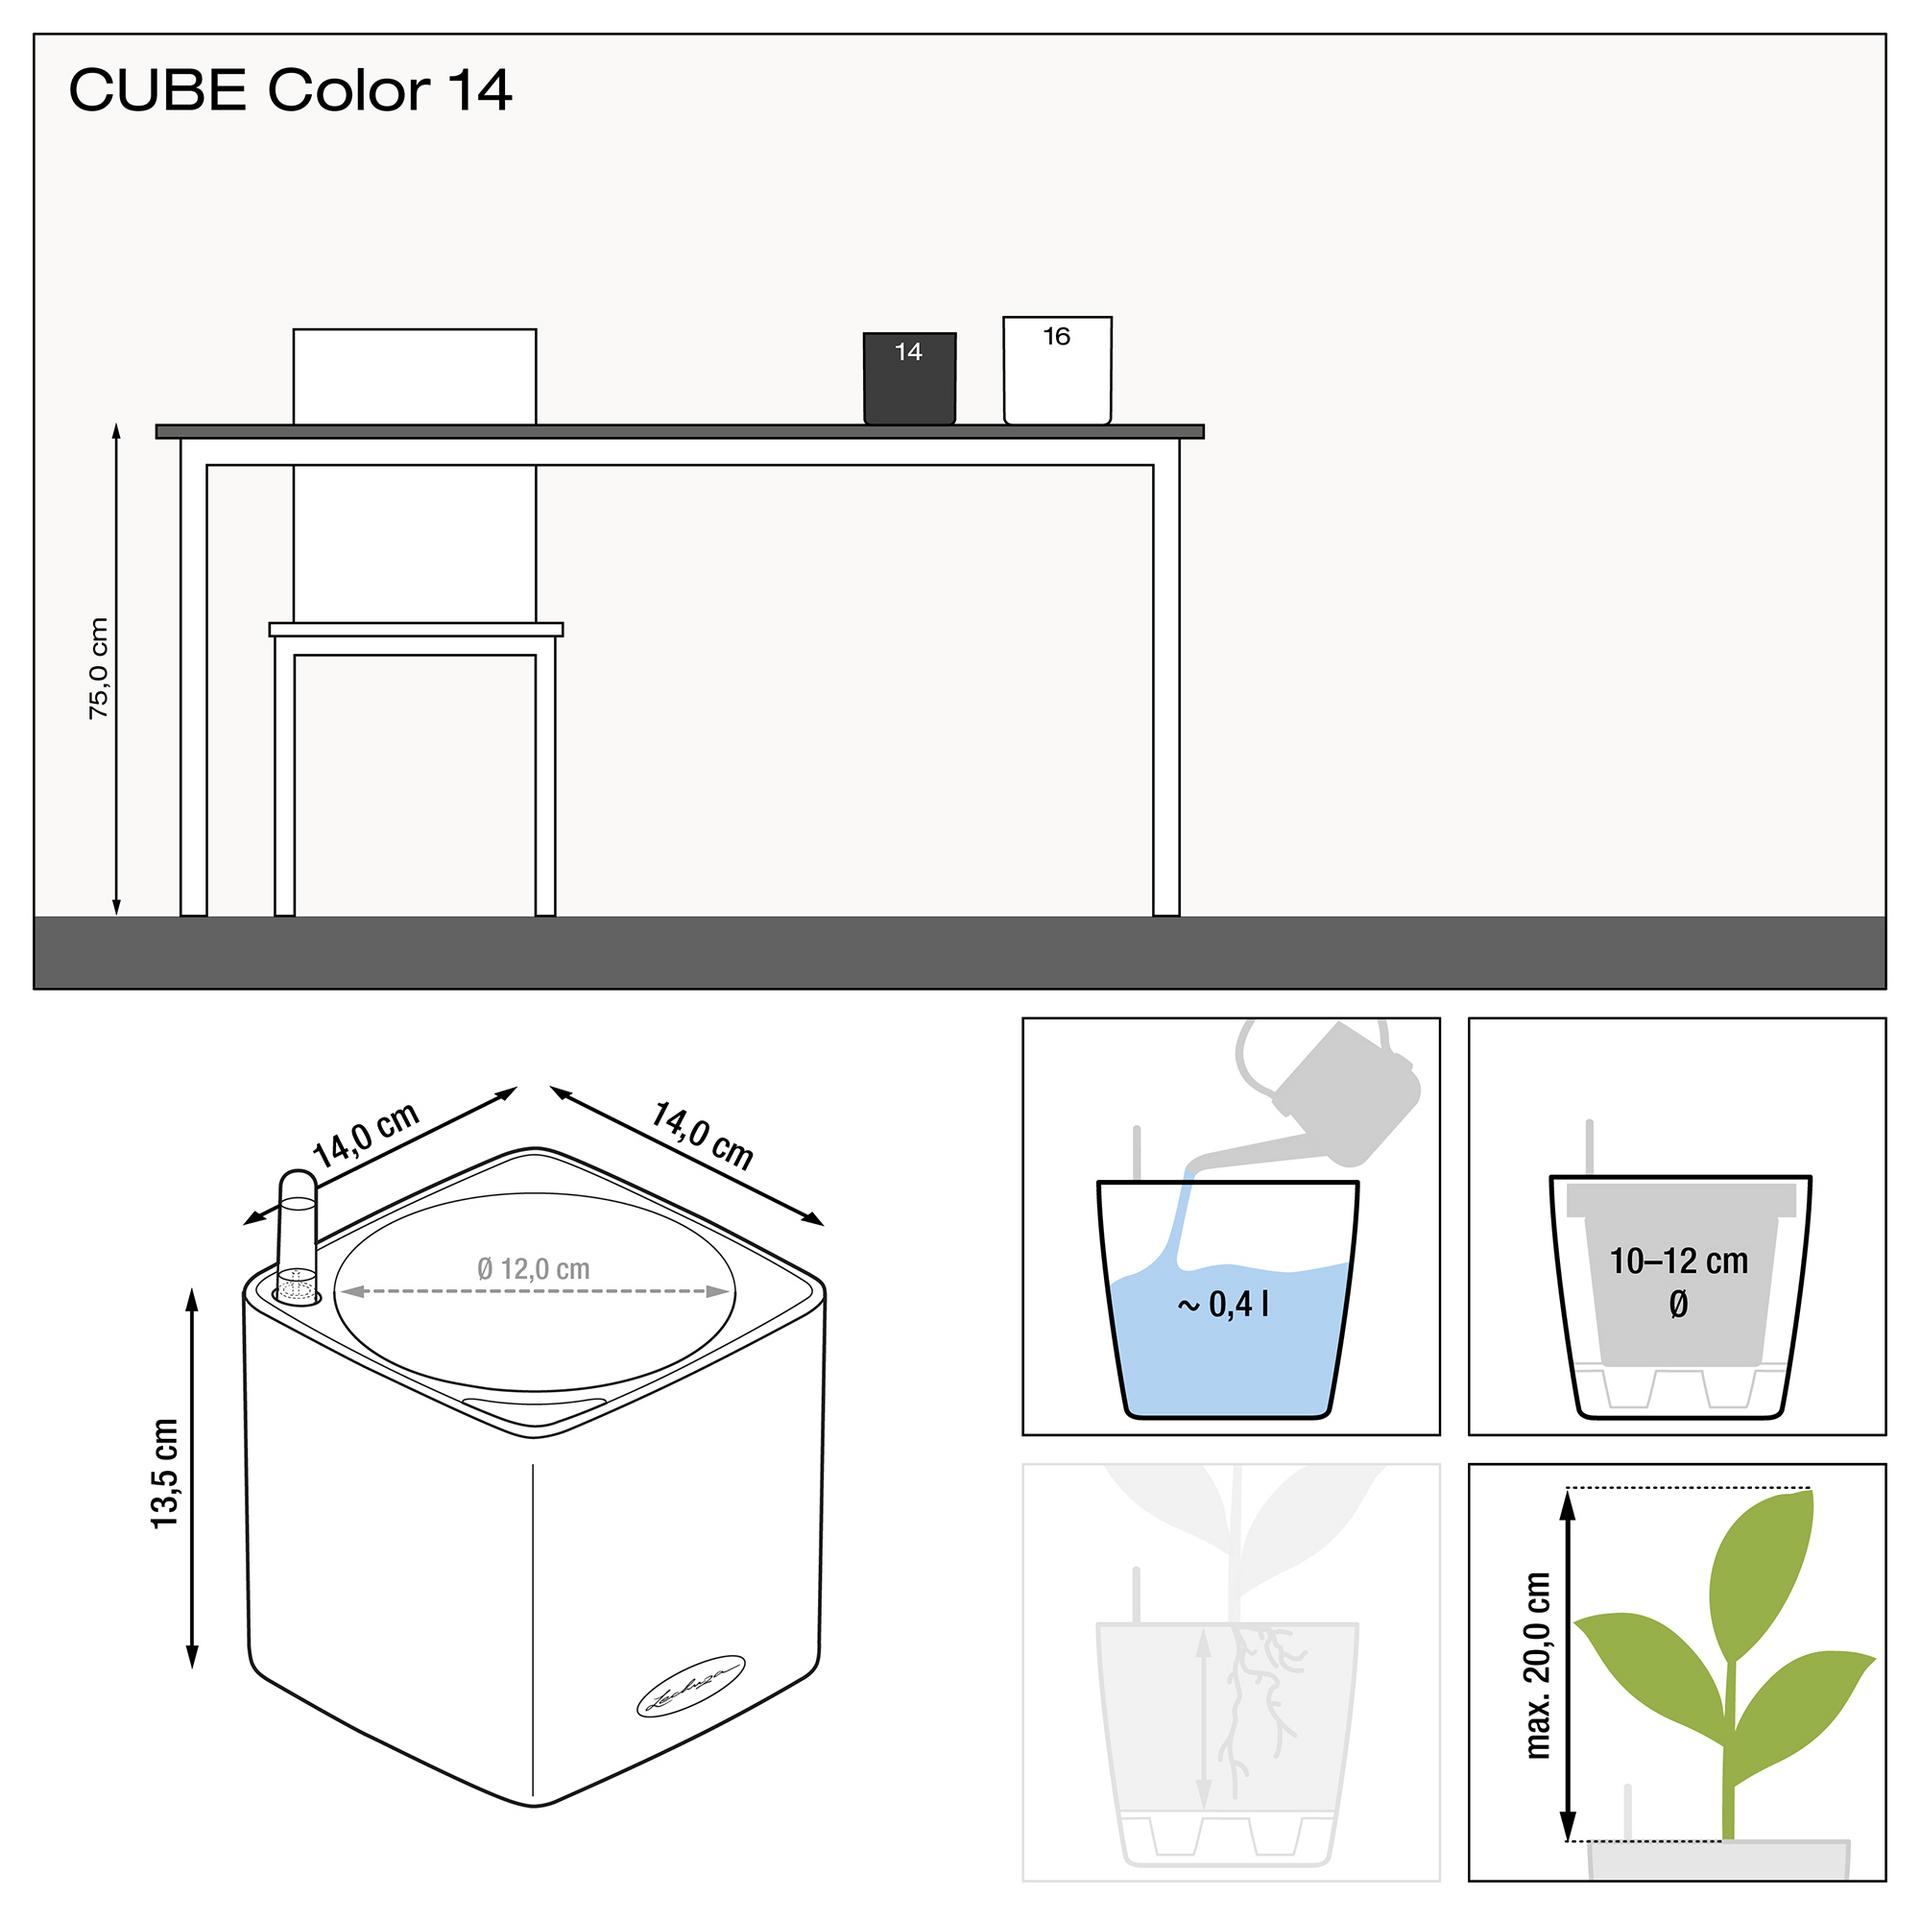 le_cube-color14_product_addi_nz